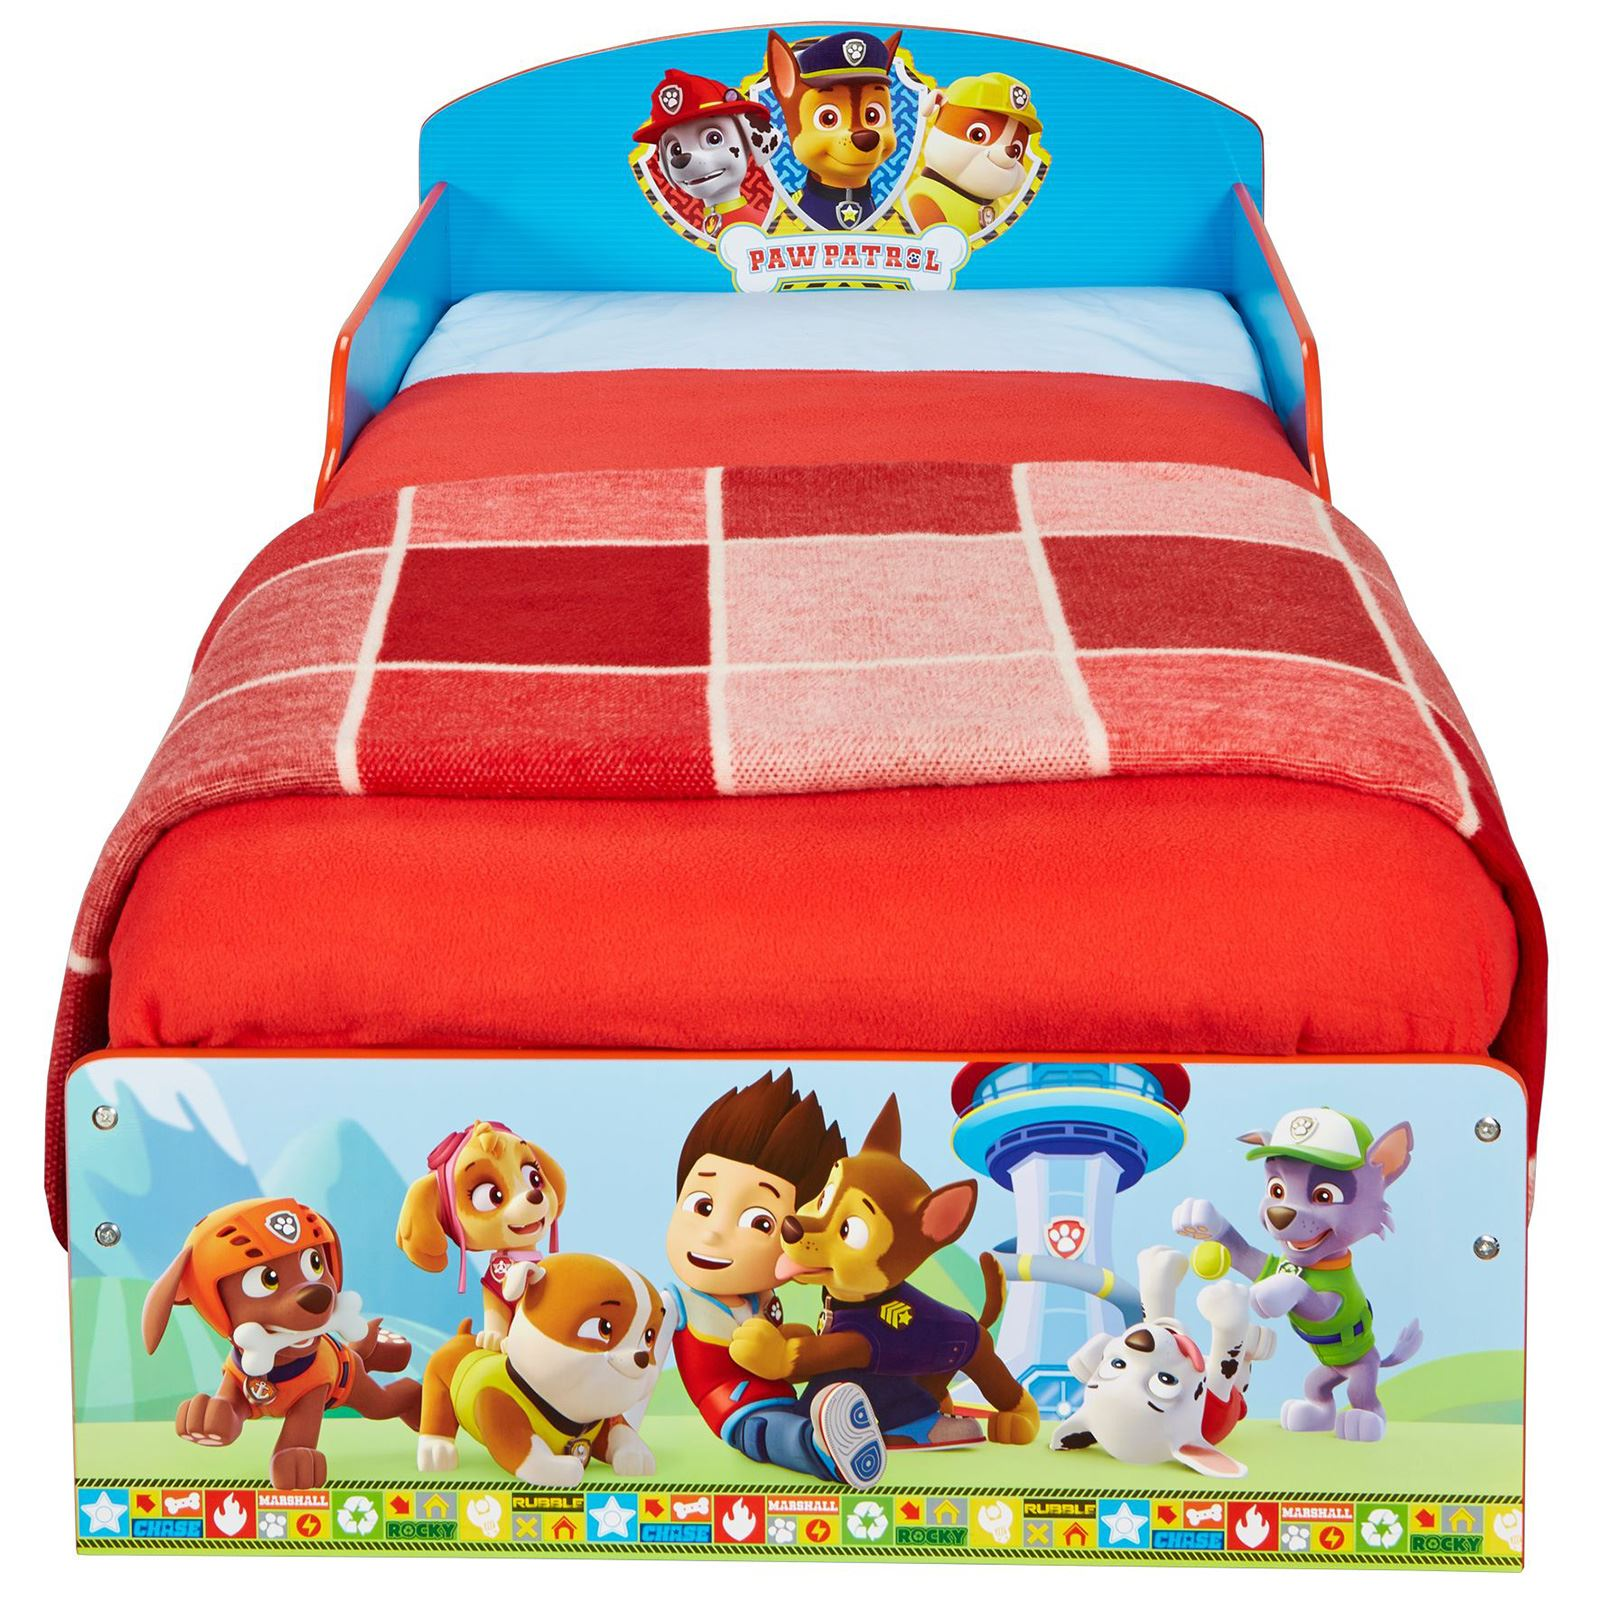 PAW PATROL TODDLER BED WITH FOAM MATTRESS BLUE WITH ...